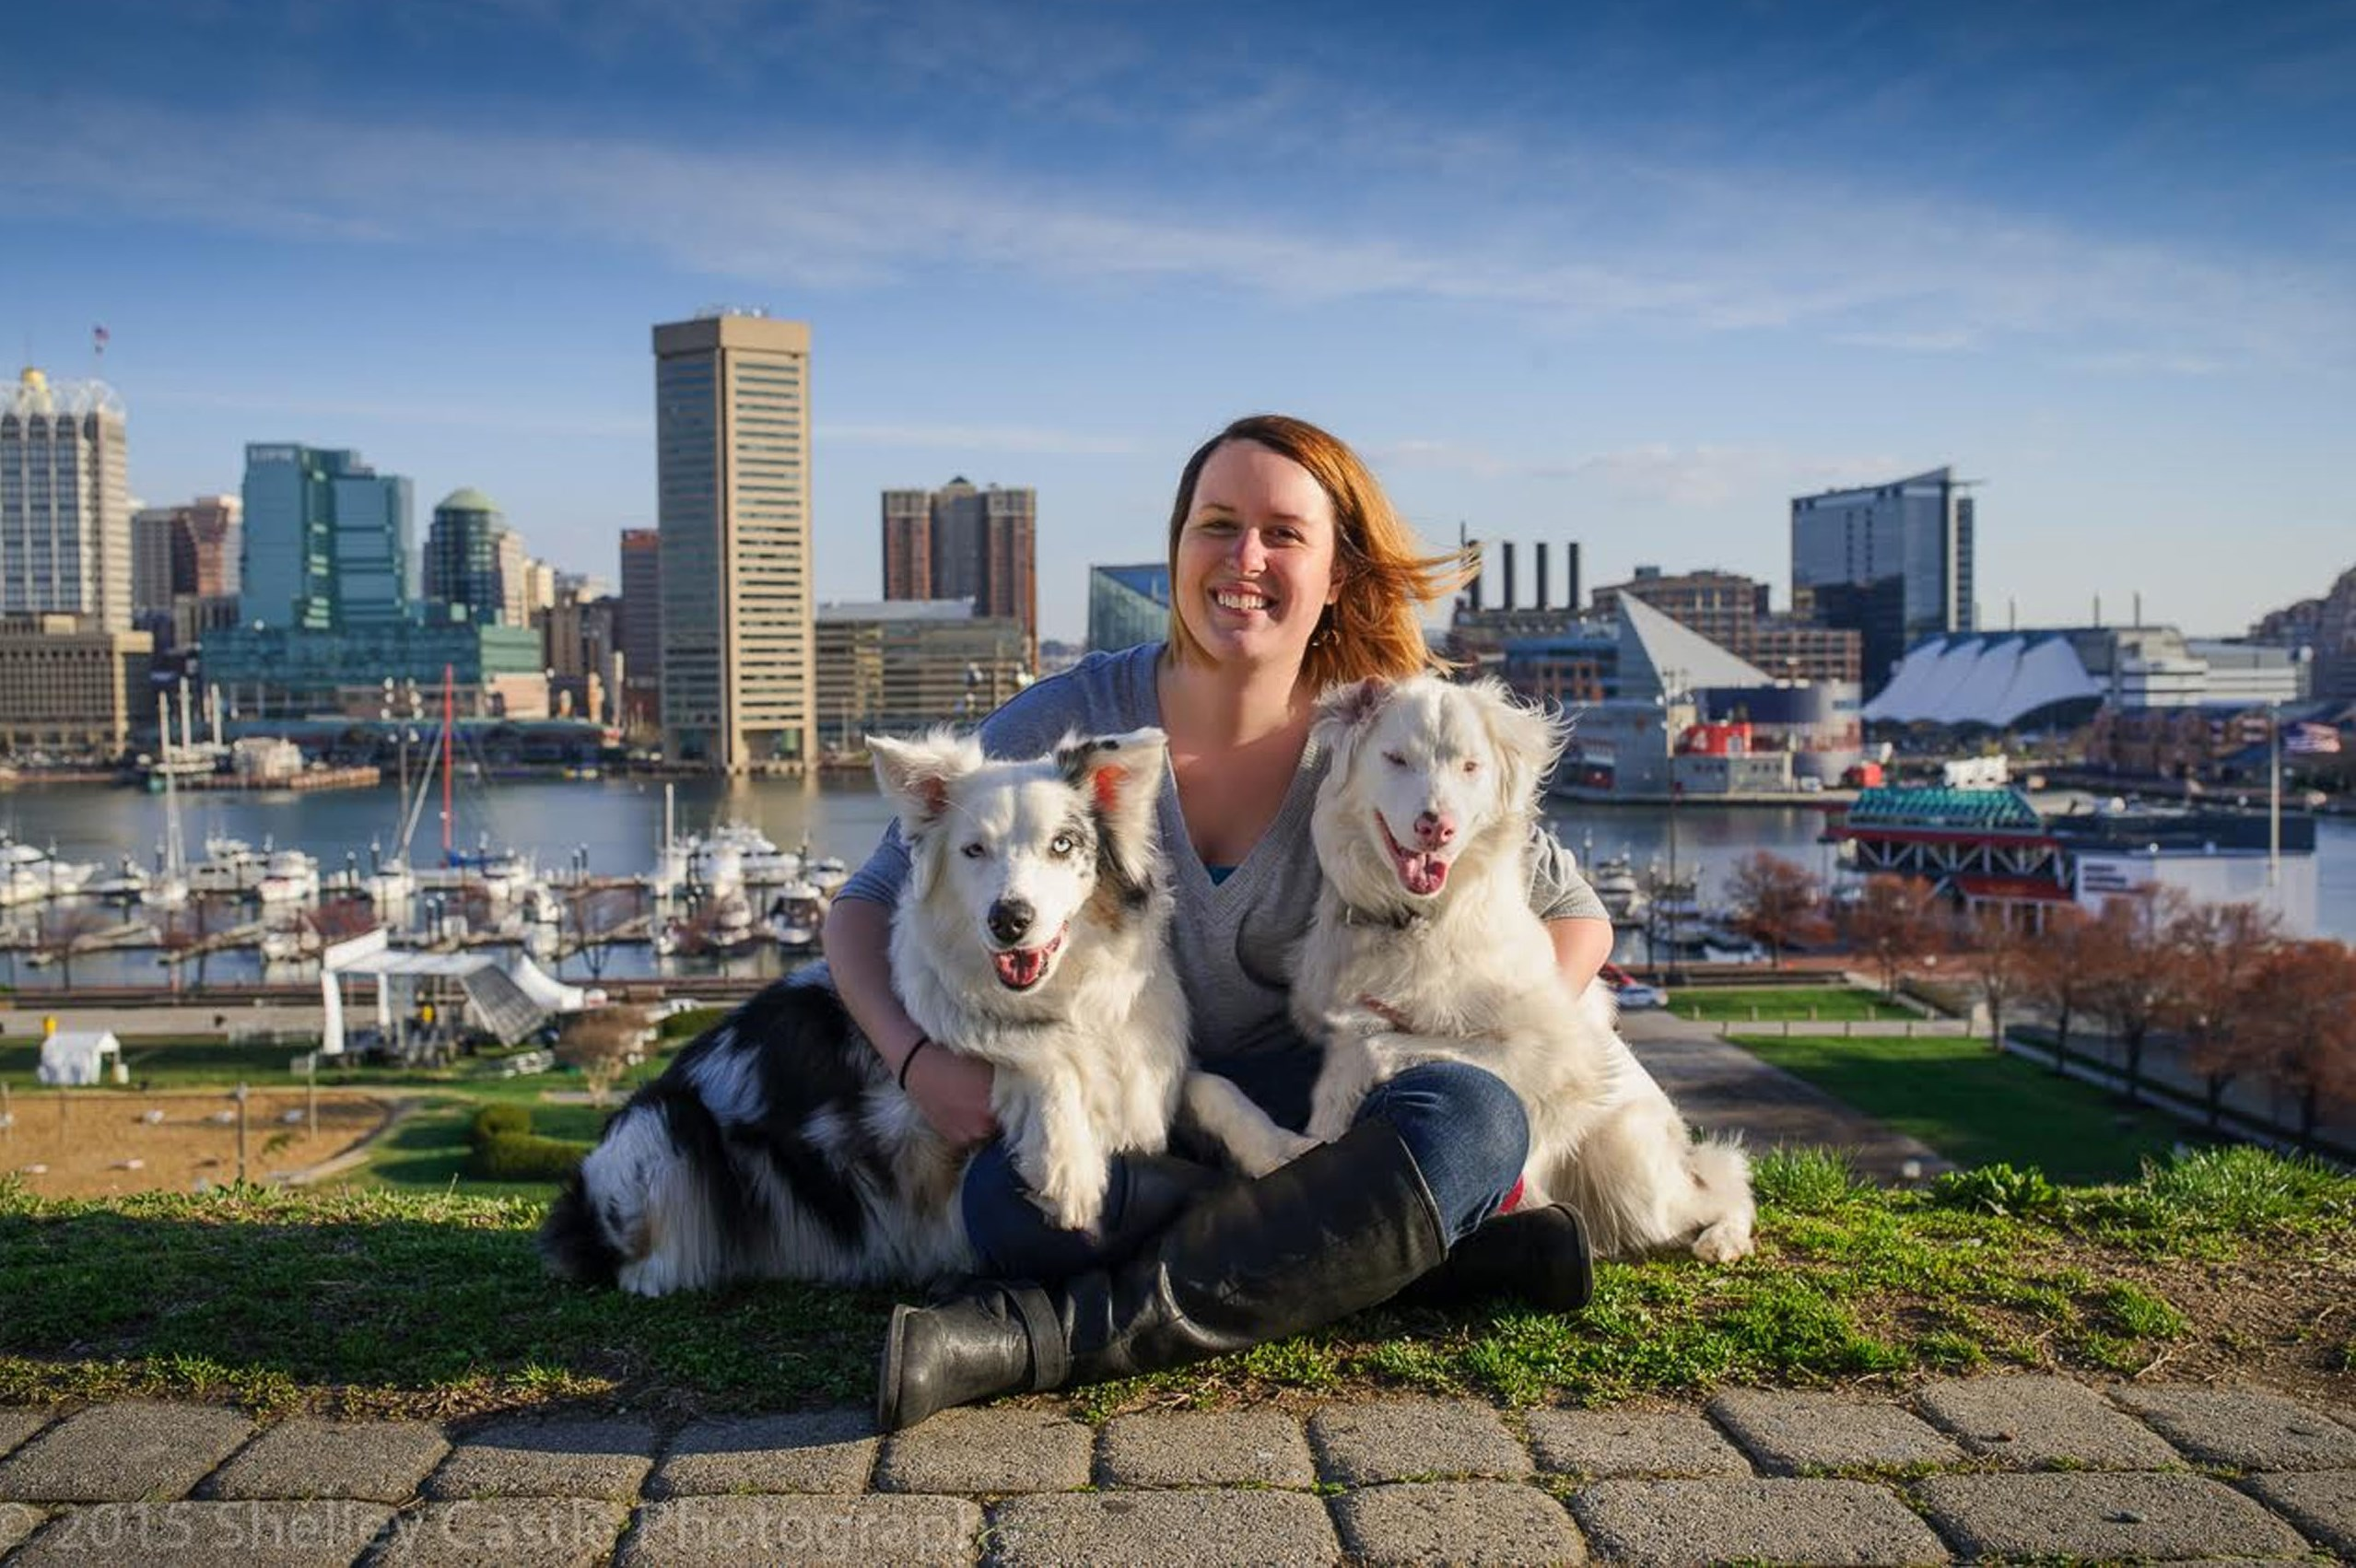 Amanda Fuller with her Australian shepherds Kai, left, and Keller. Keller was born deaf and partially blind as the offspring to two merle-coated dogs. Ms. Fuller is trying to educate the public on the risks of such breeding.